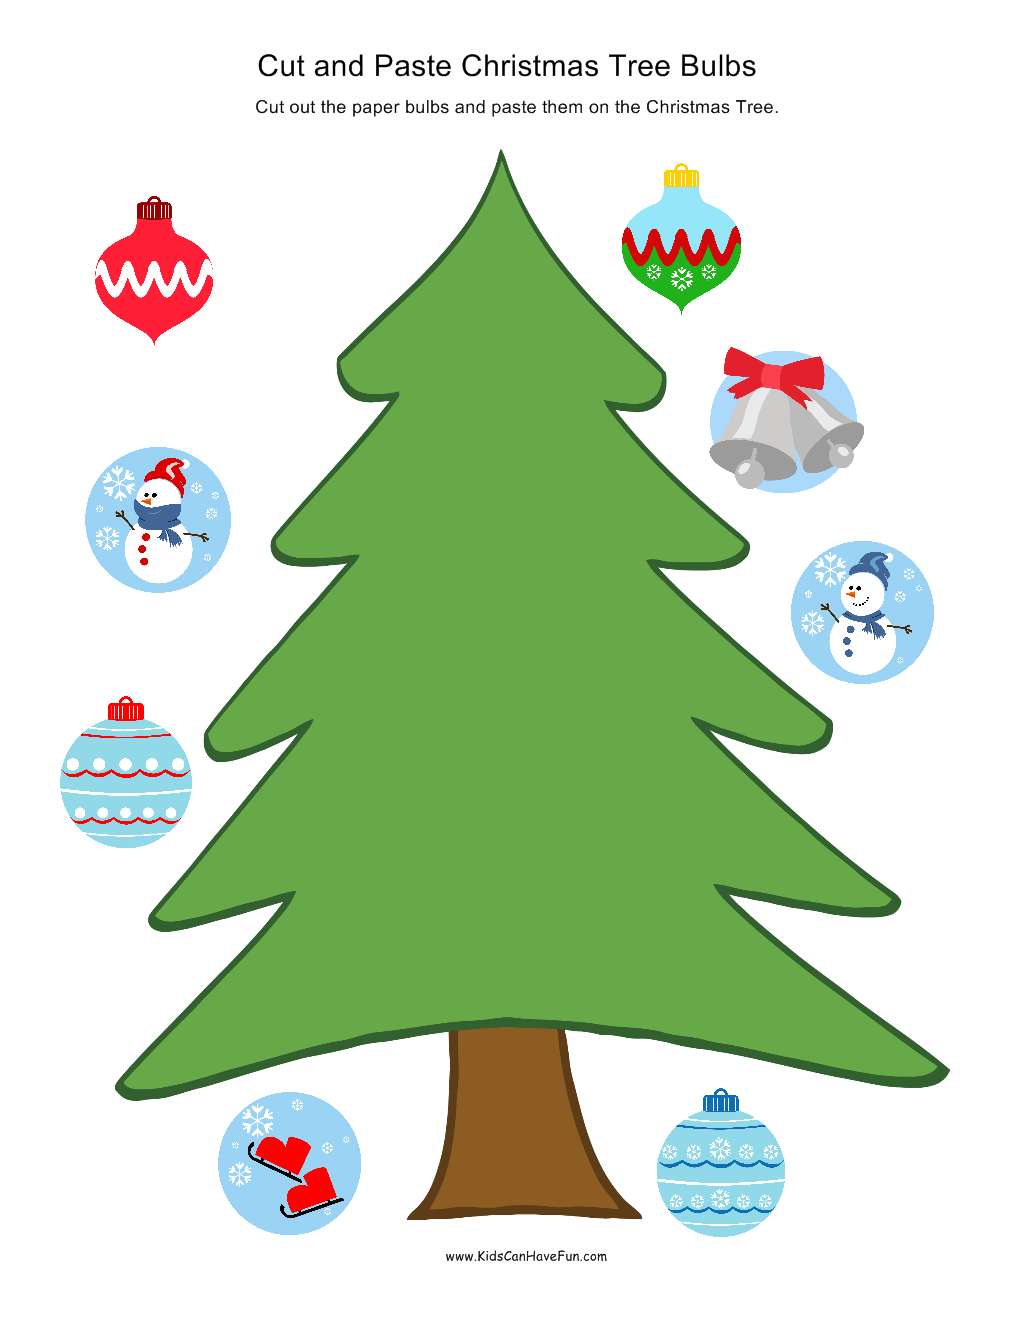 Cut and Paste Christmas Tree Bulbs | kids games | Pinterest ...